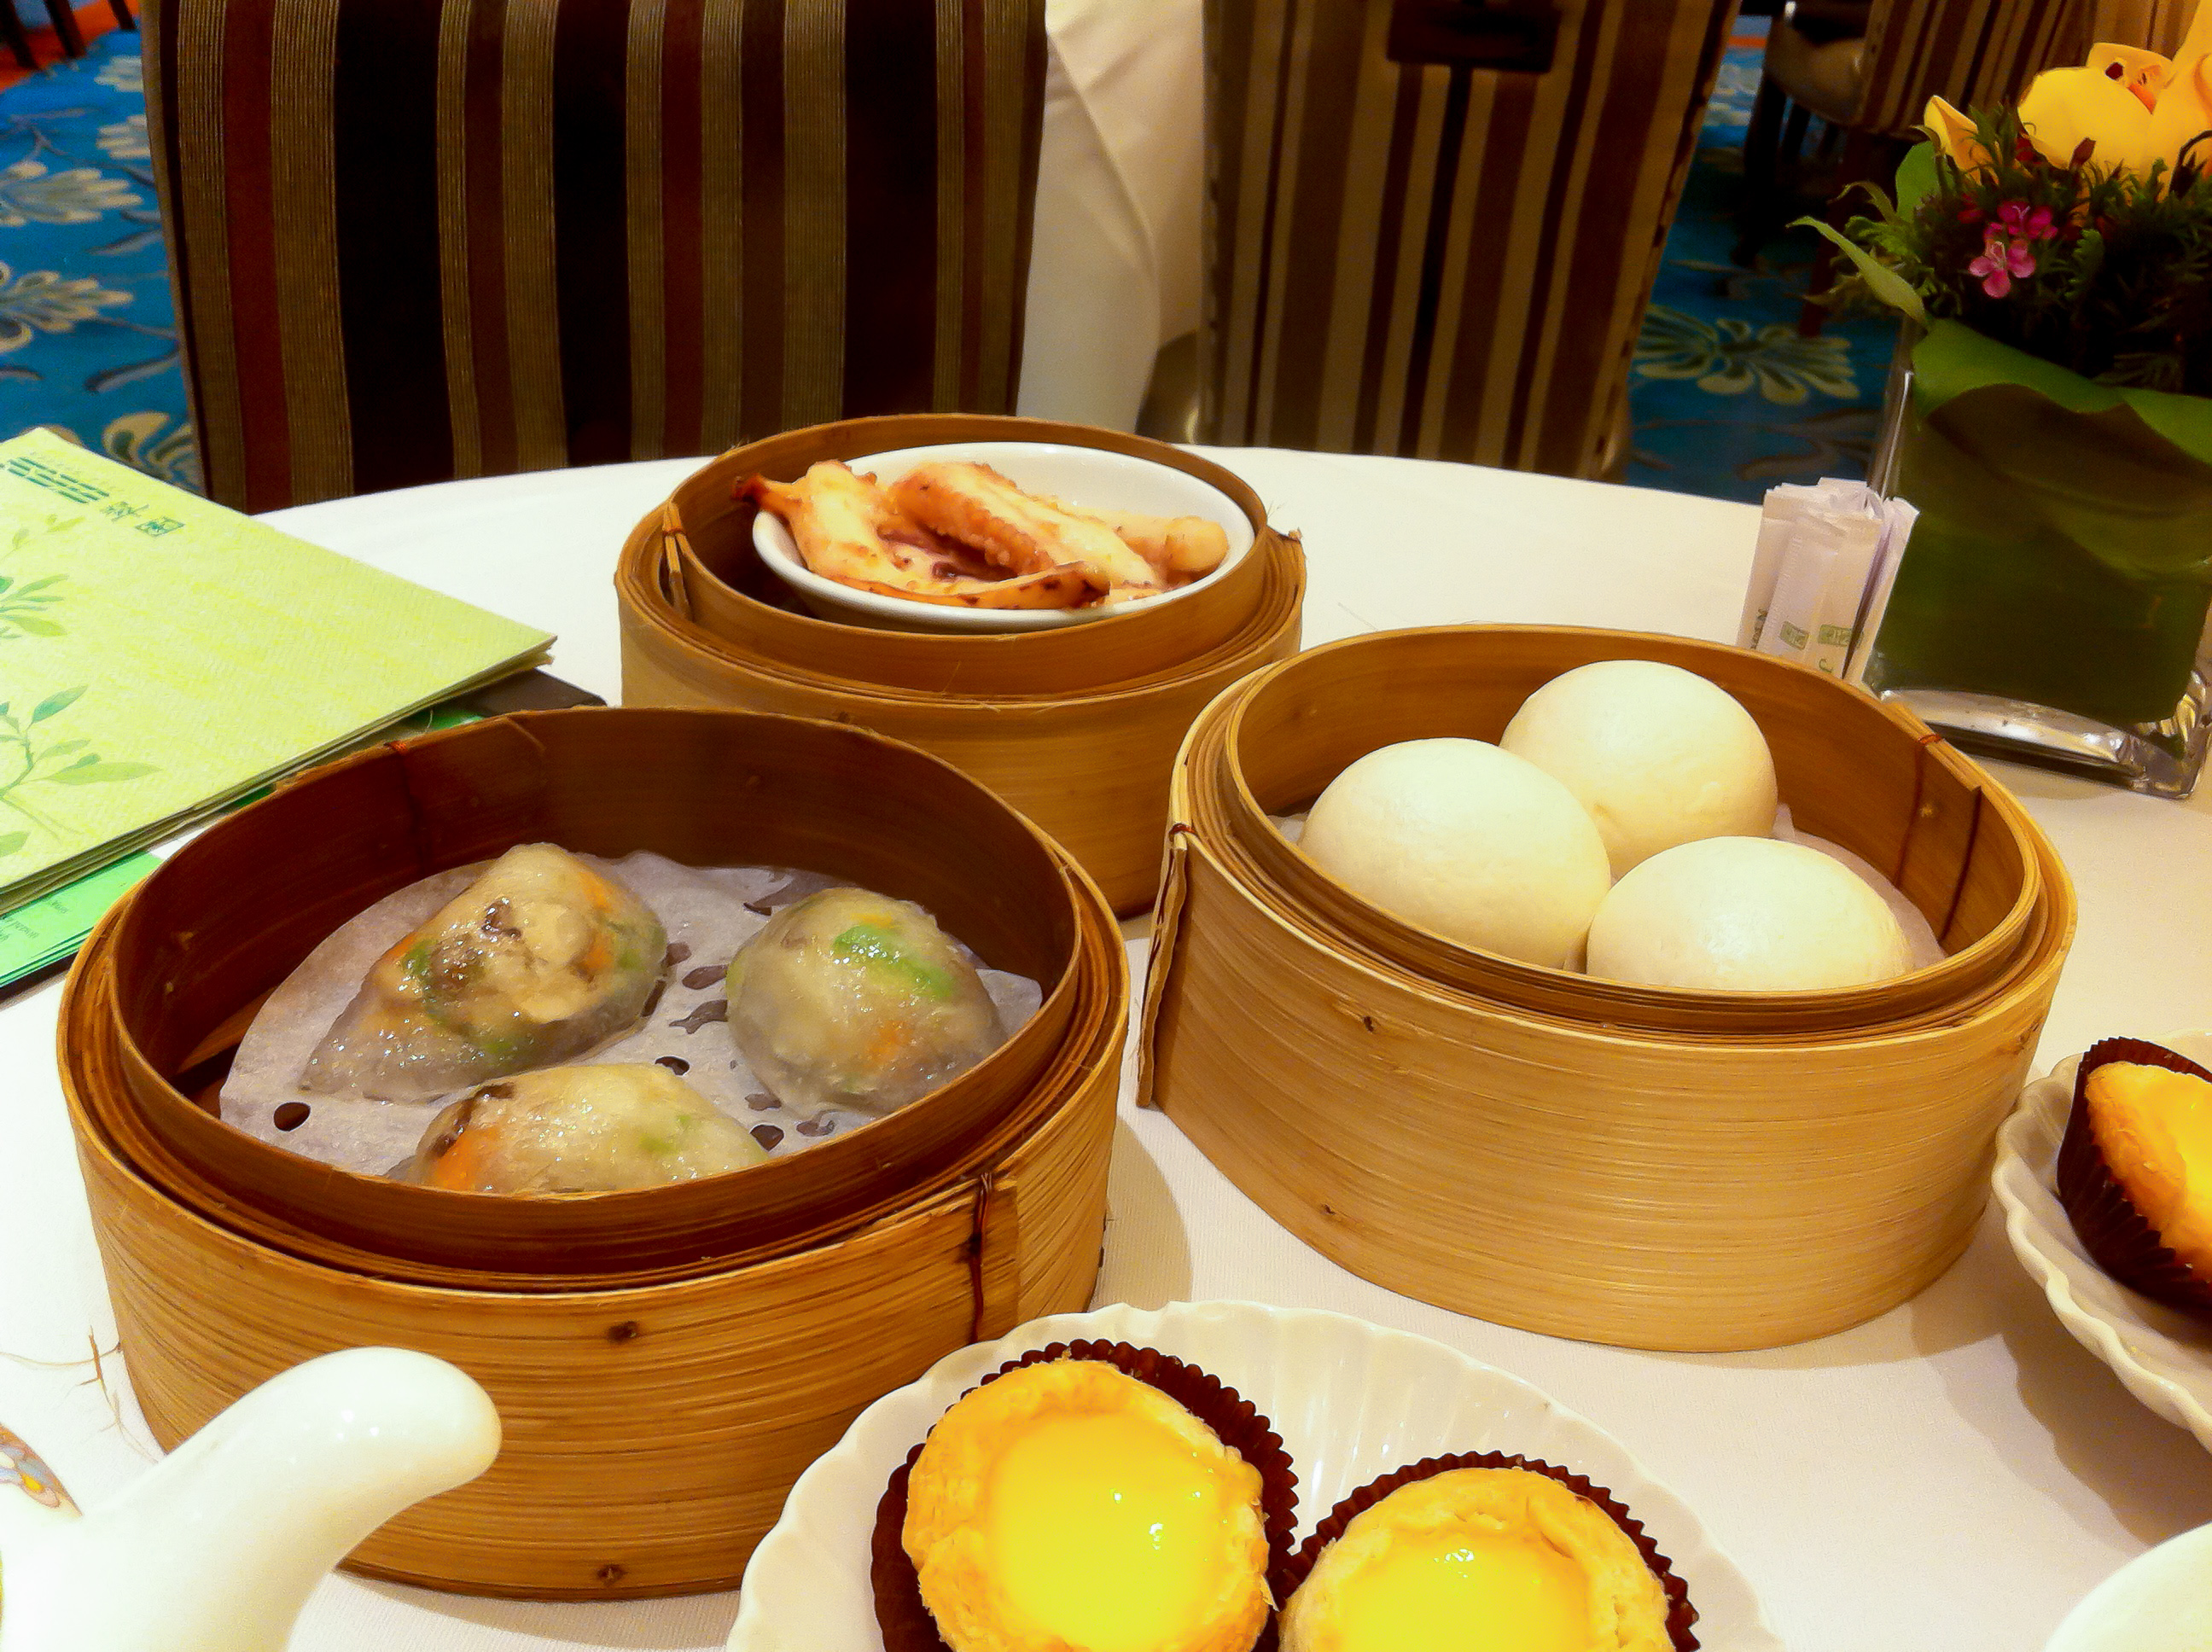 Dim Sum spread at Crystal Jade in Hong Kong. Photo by alphacityguides.